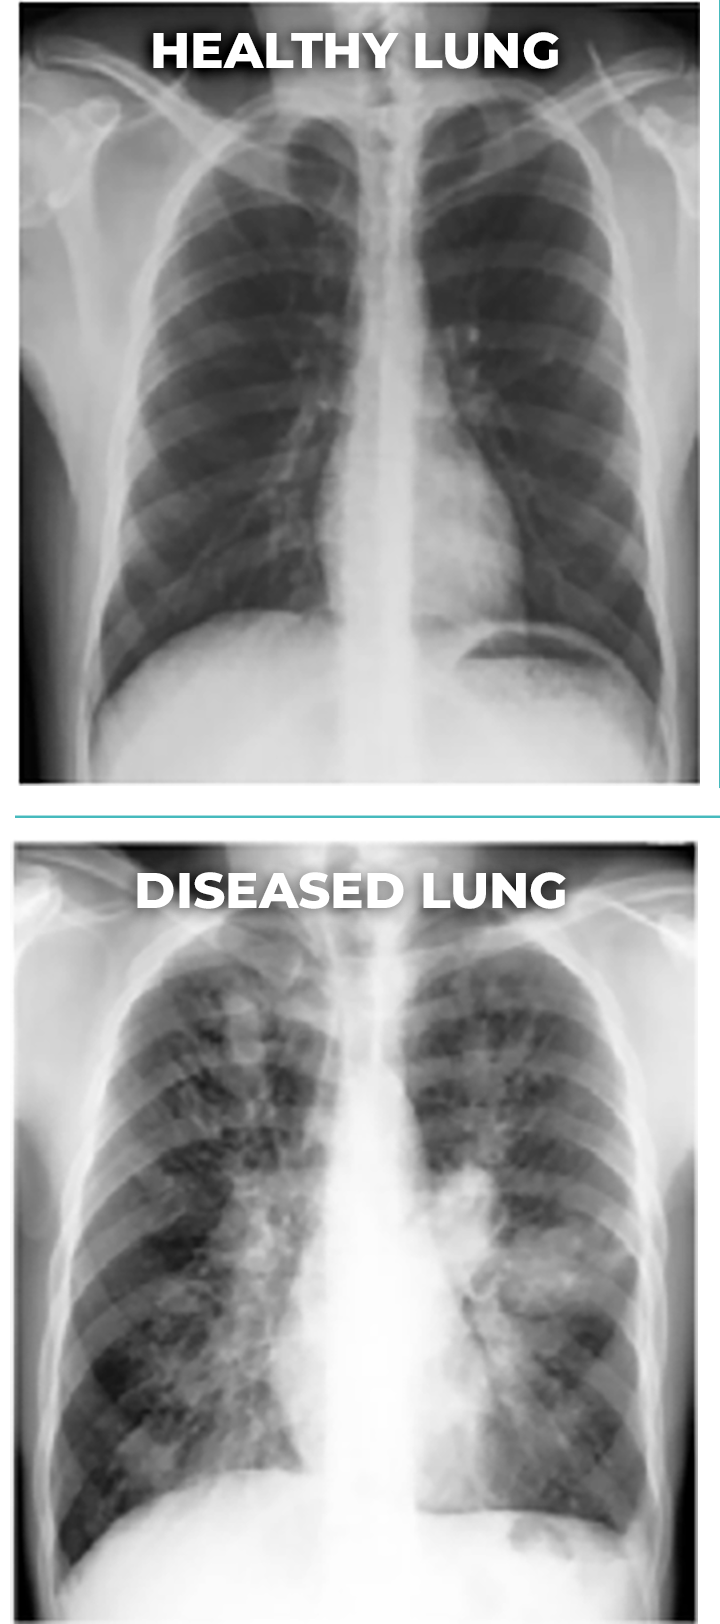 ABPA Lung